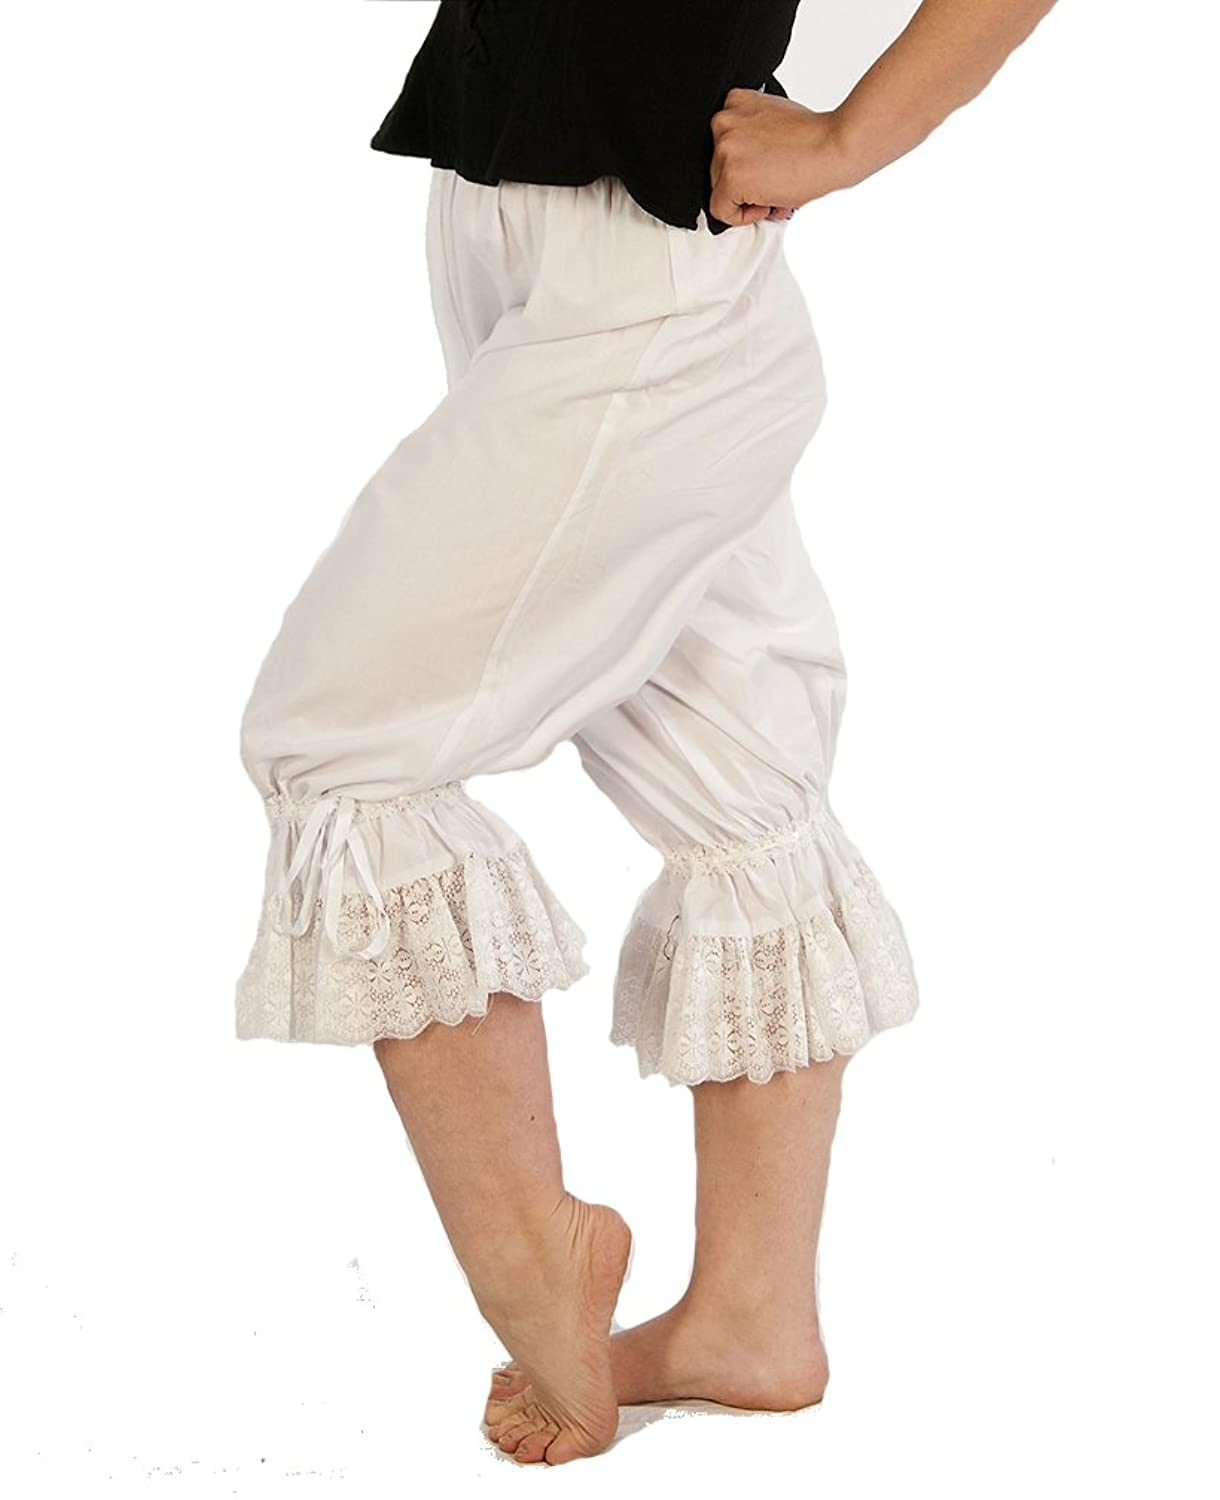 Renaissance Wench Cotton Lace Trimmed Bloomers - DeluxeAdultCostumes.com